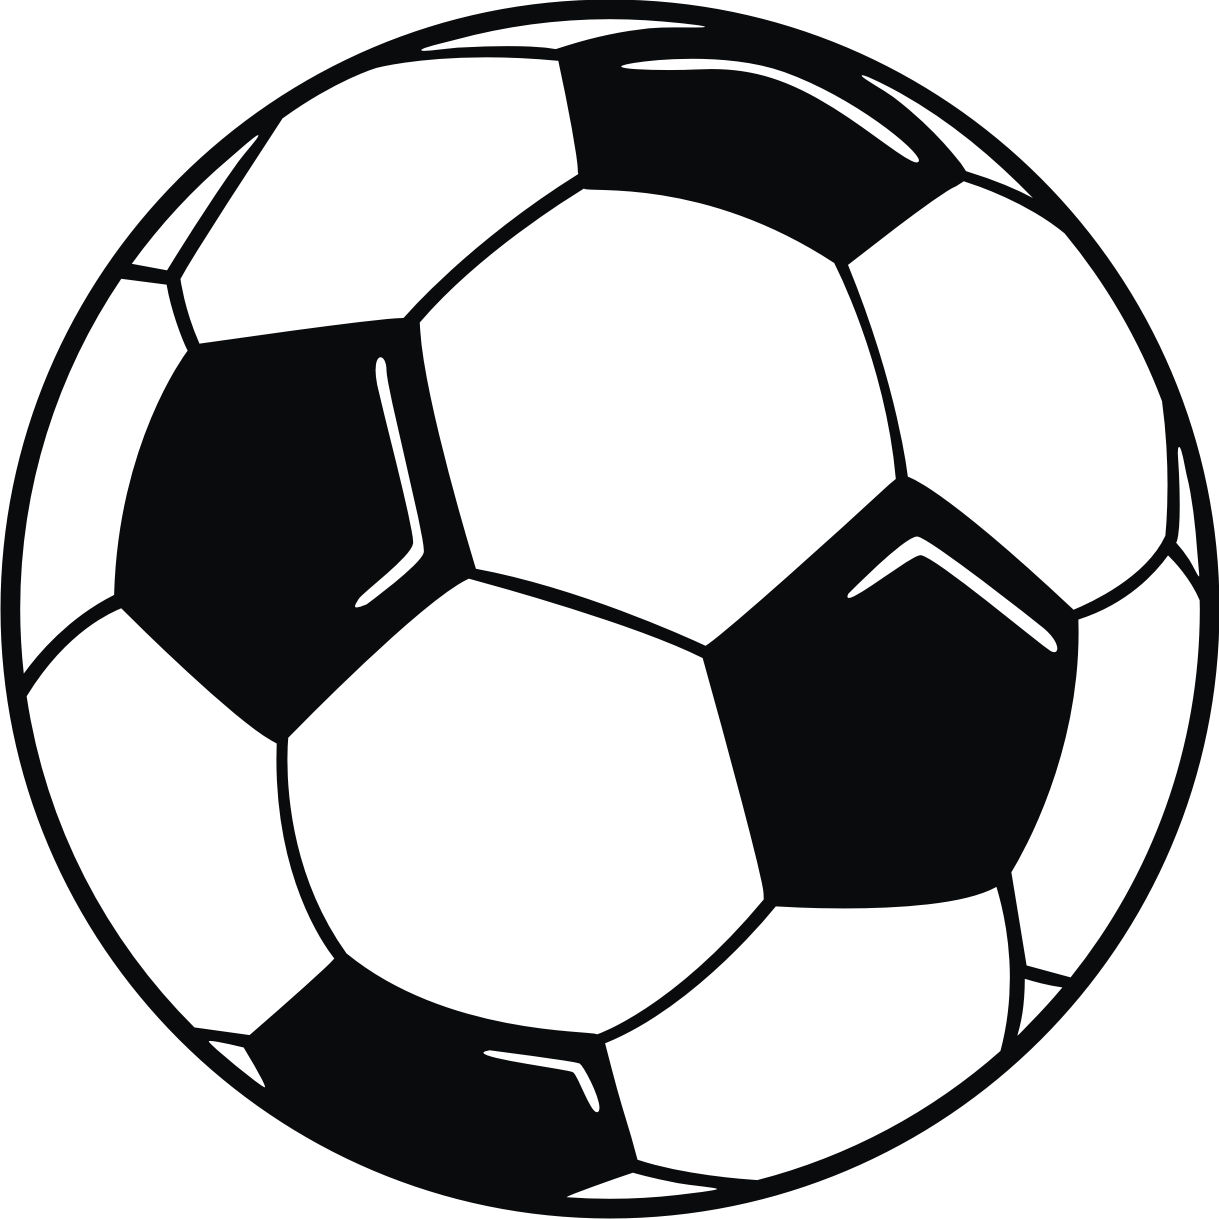 Soccer ball border clip art free clipart images